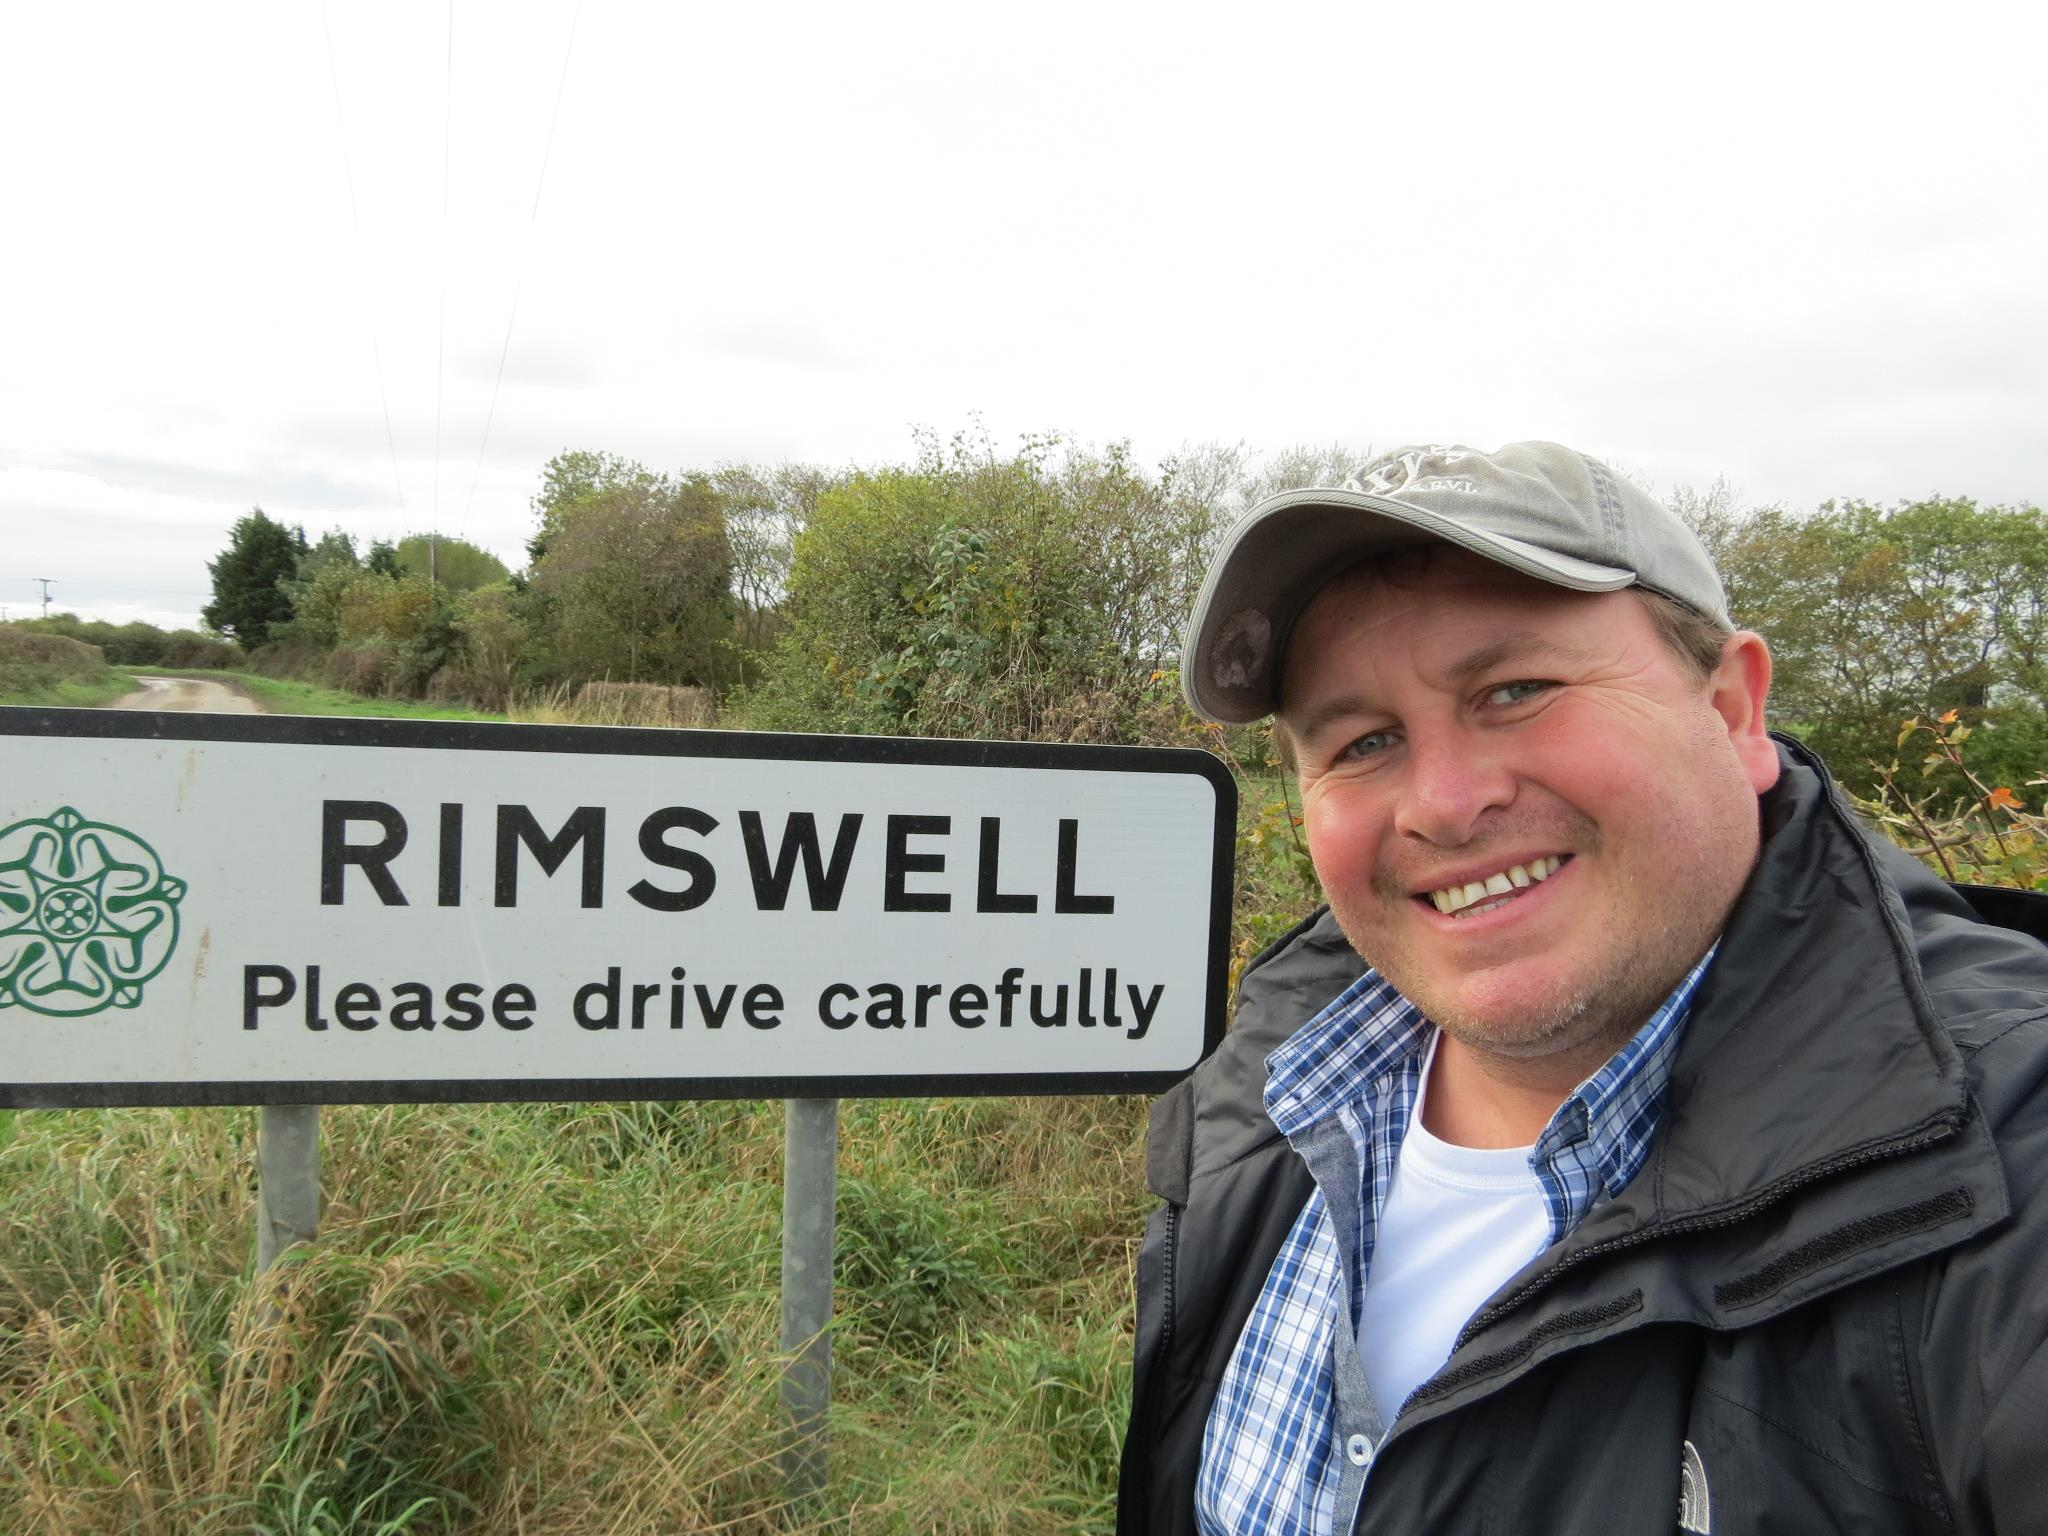 Rimswell in the East Riding of Yorkshire.